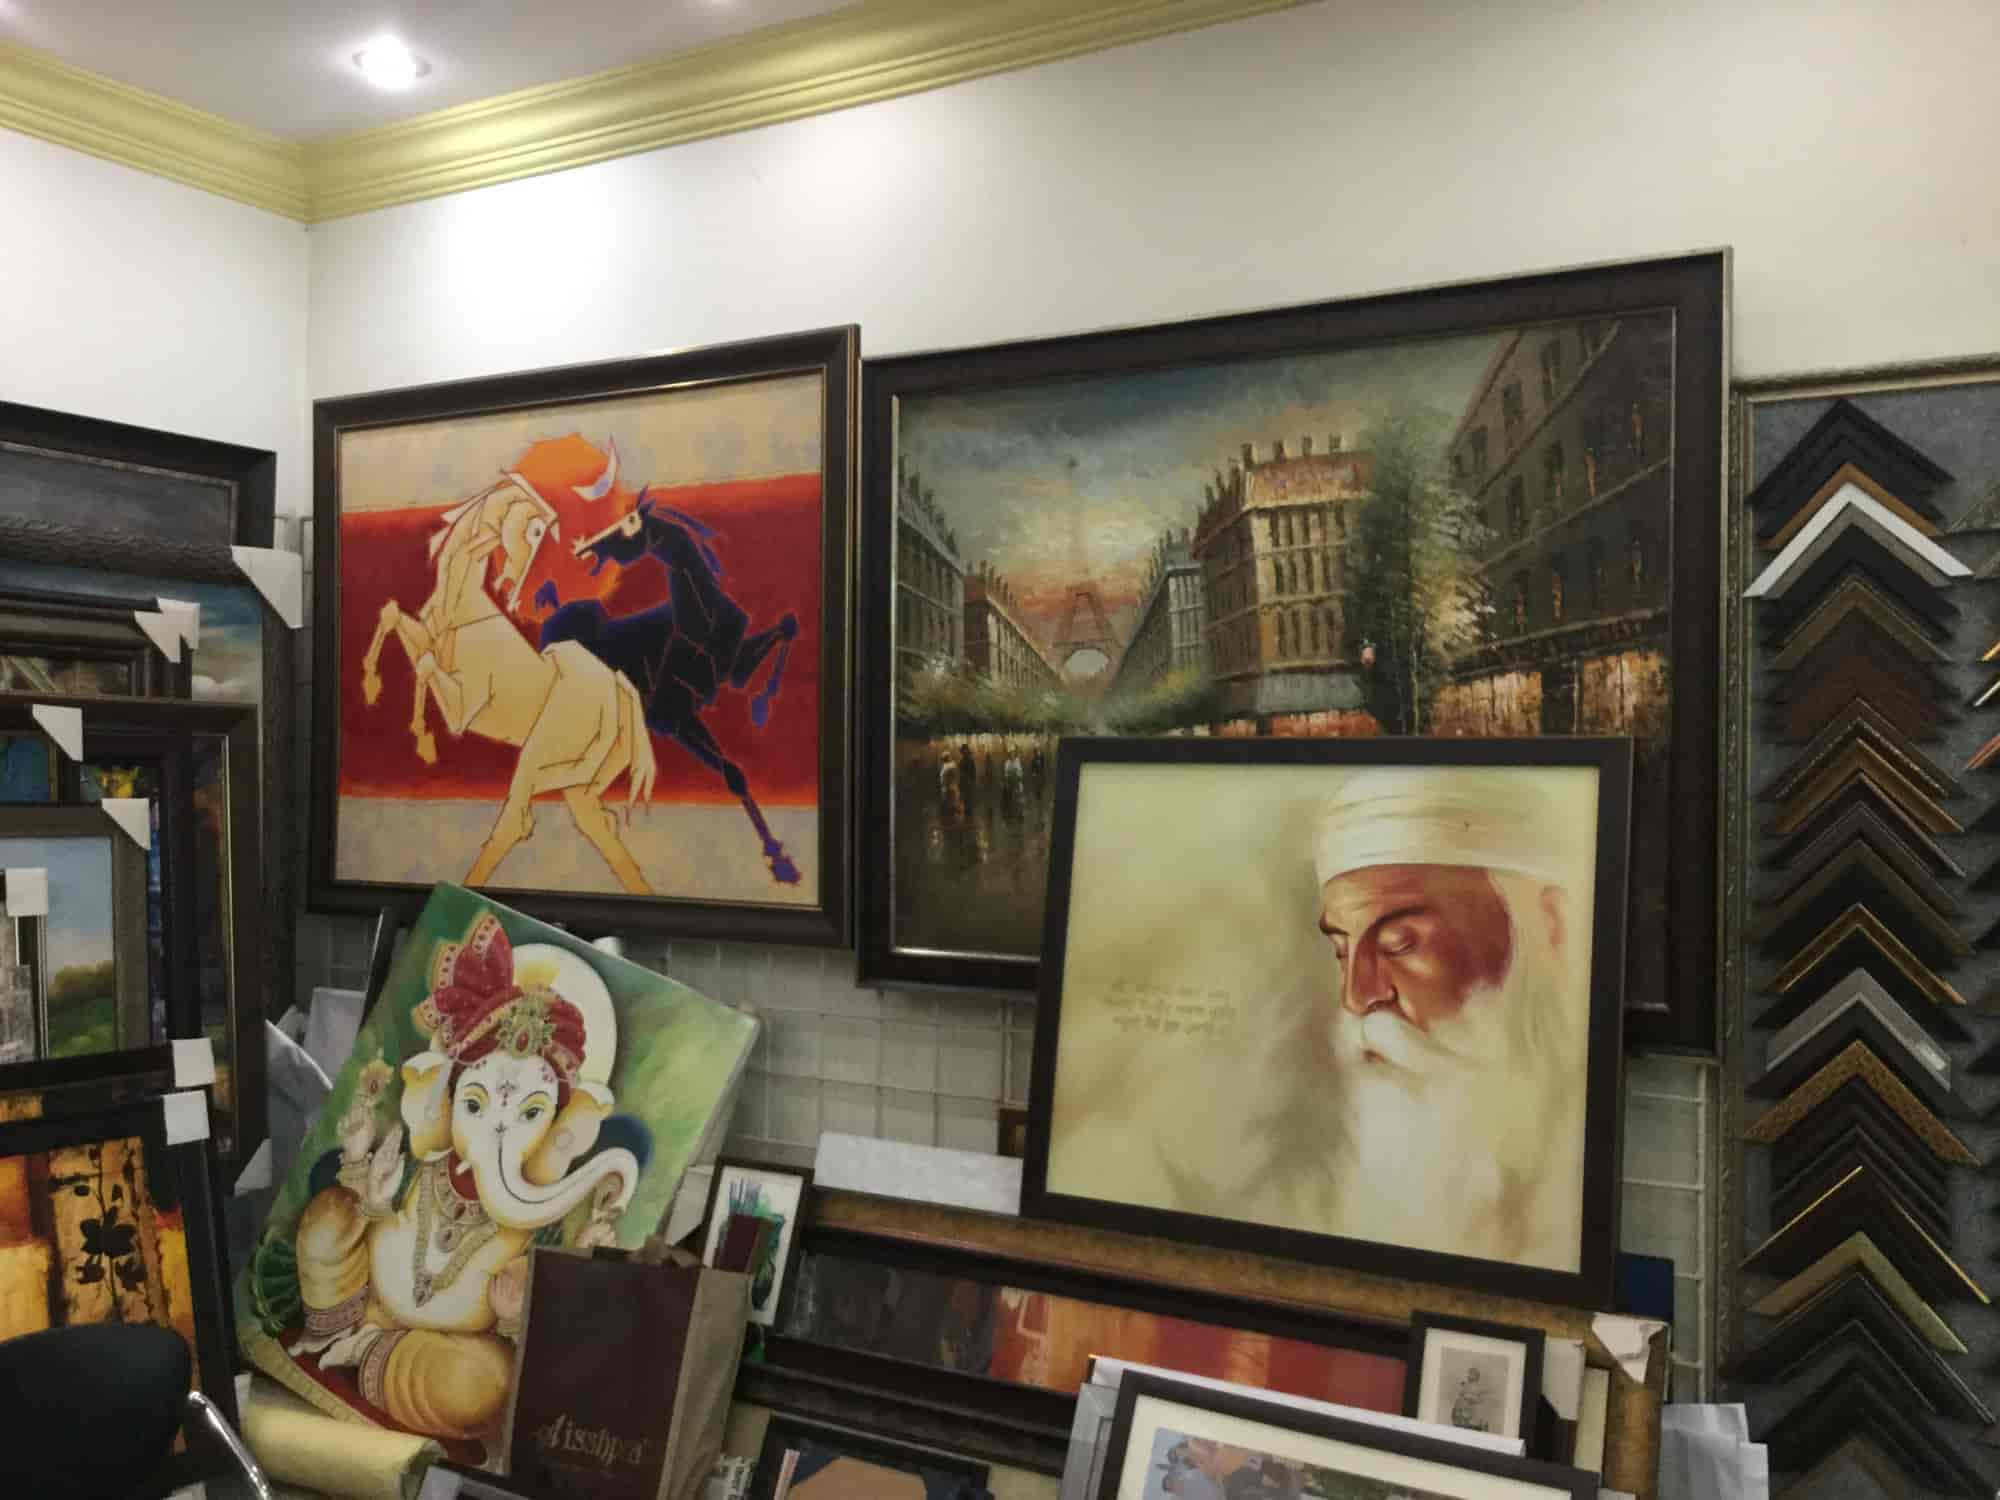 Jasmine art and frames Photos, Aliganj, Lucknow- Pictures & Images ...